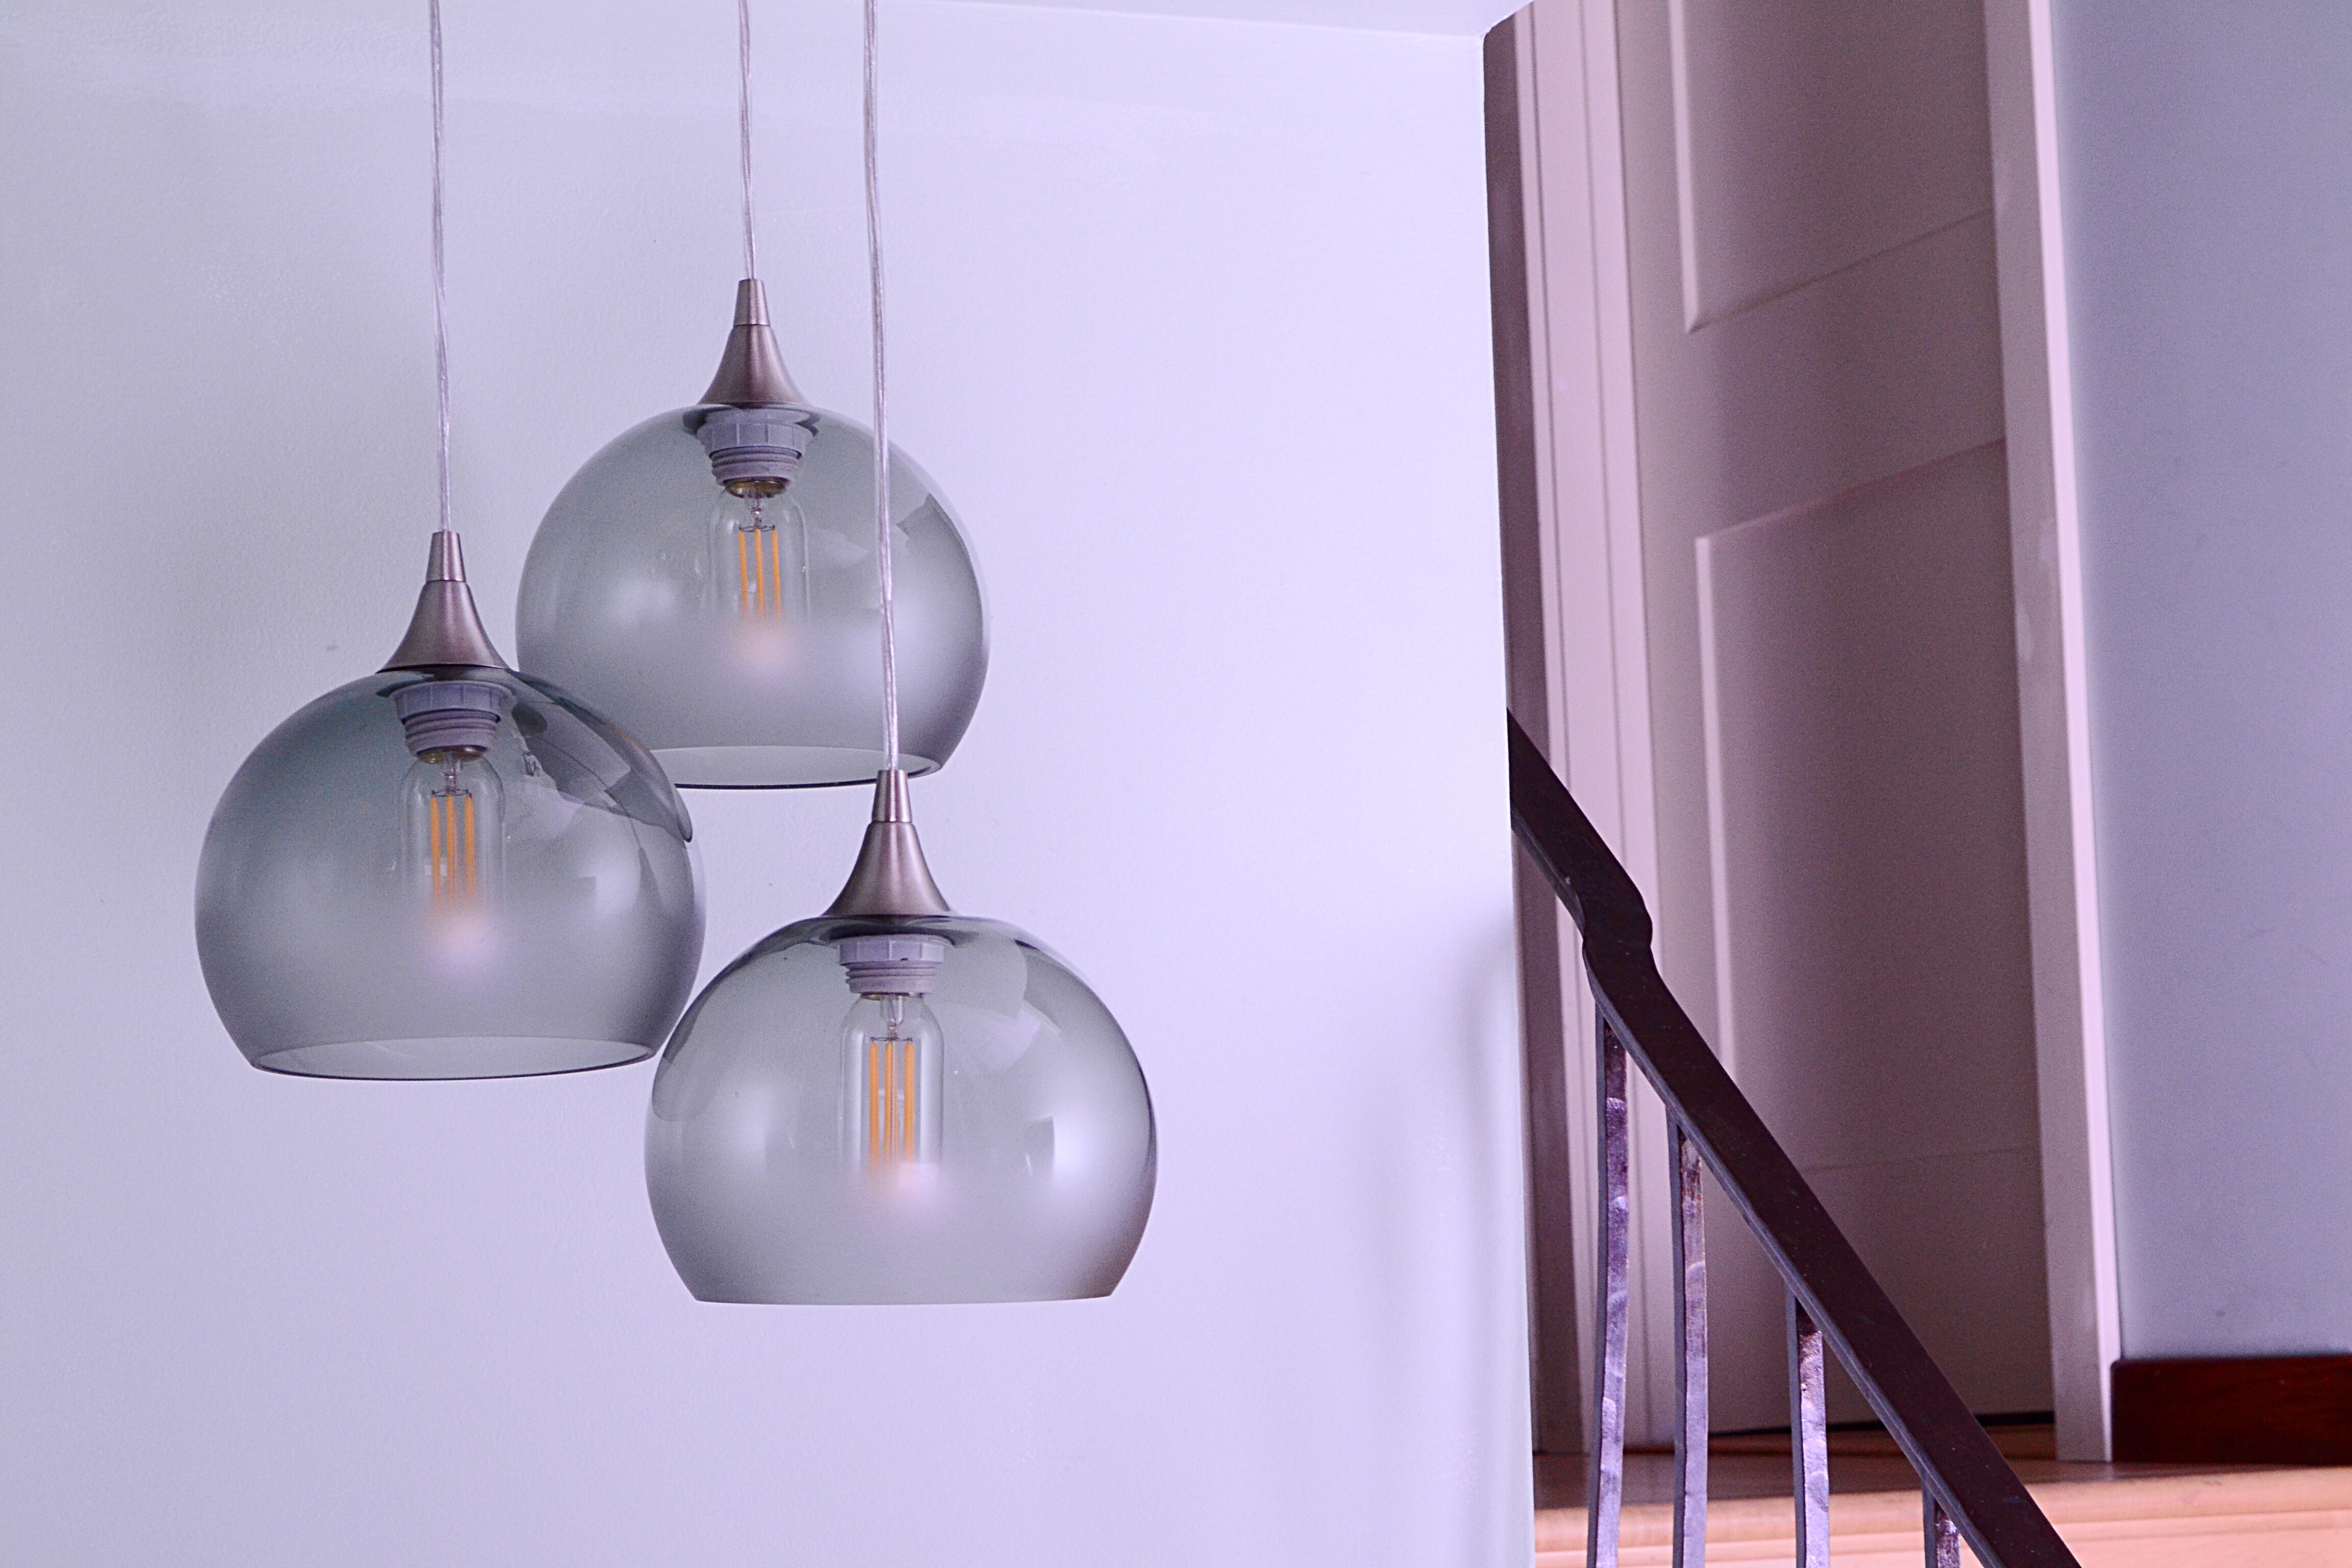 Bicycleglassco 3 light pendant wayfair